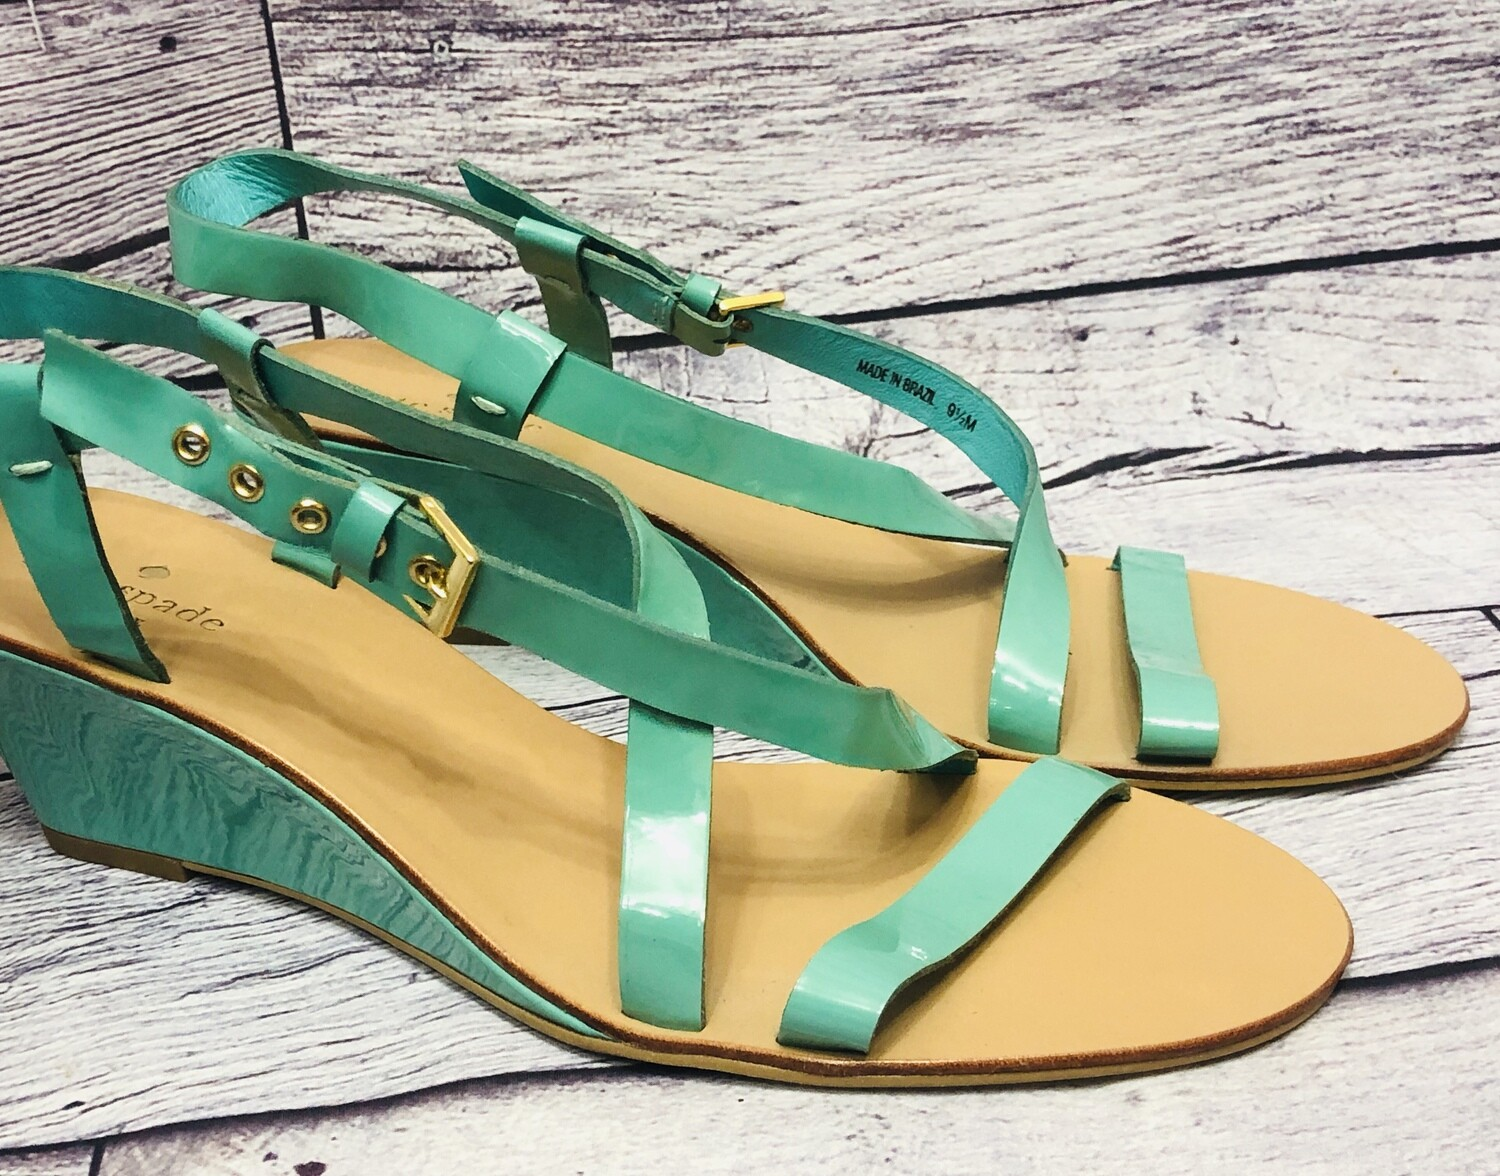 New KATE SPADE Aqua Patent Leather Strap Wedge Sandals size 9 1/2